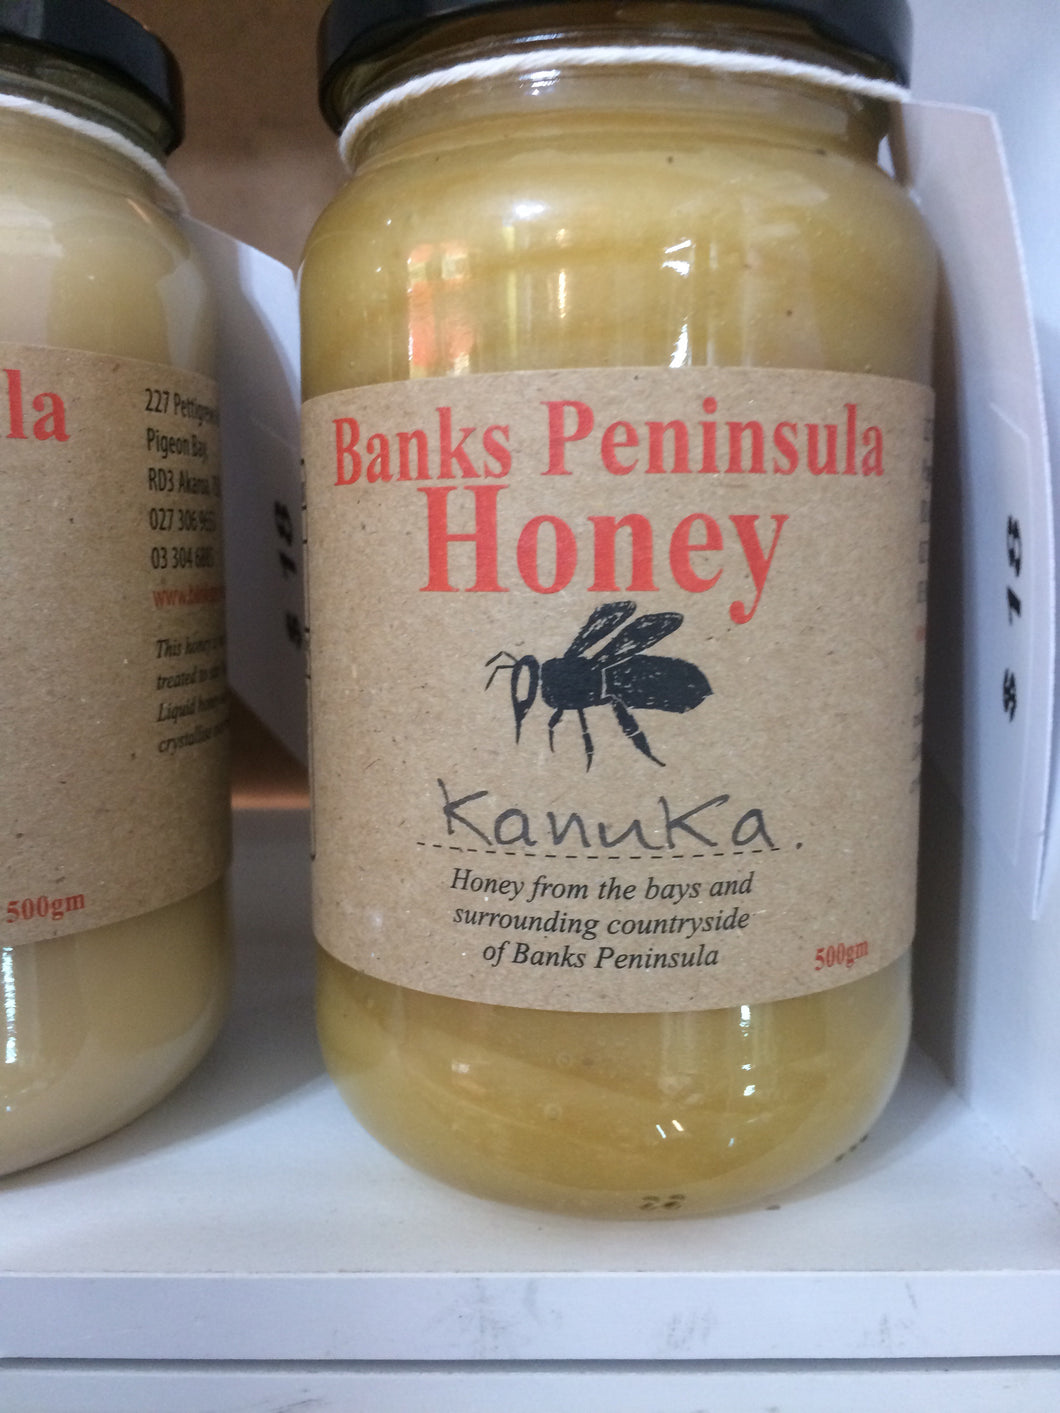 Banks Peninsula honey - Kanuka